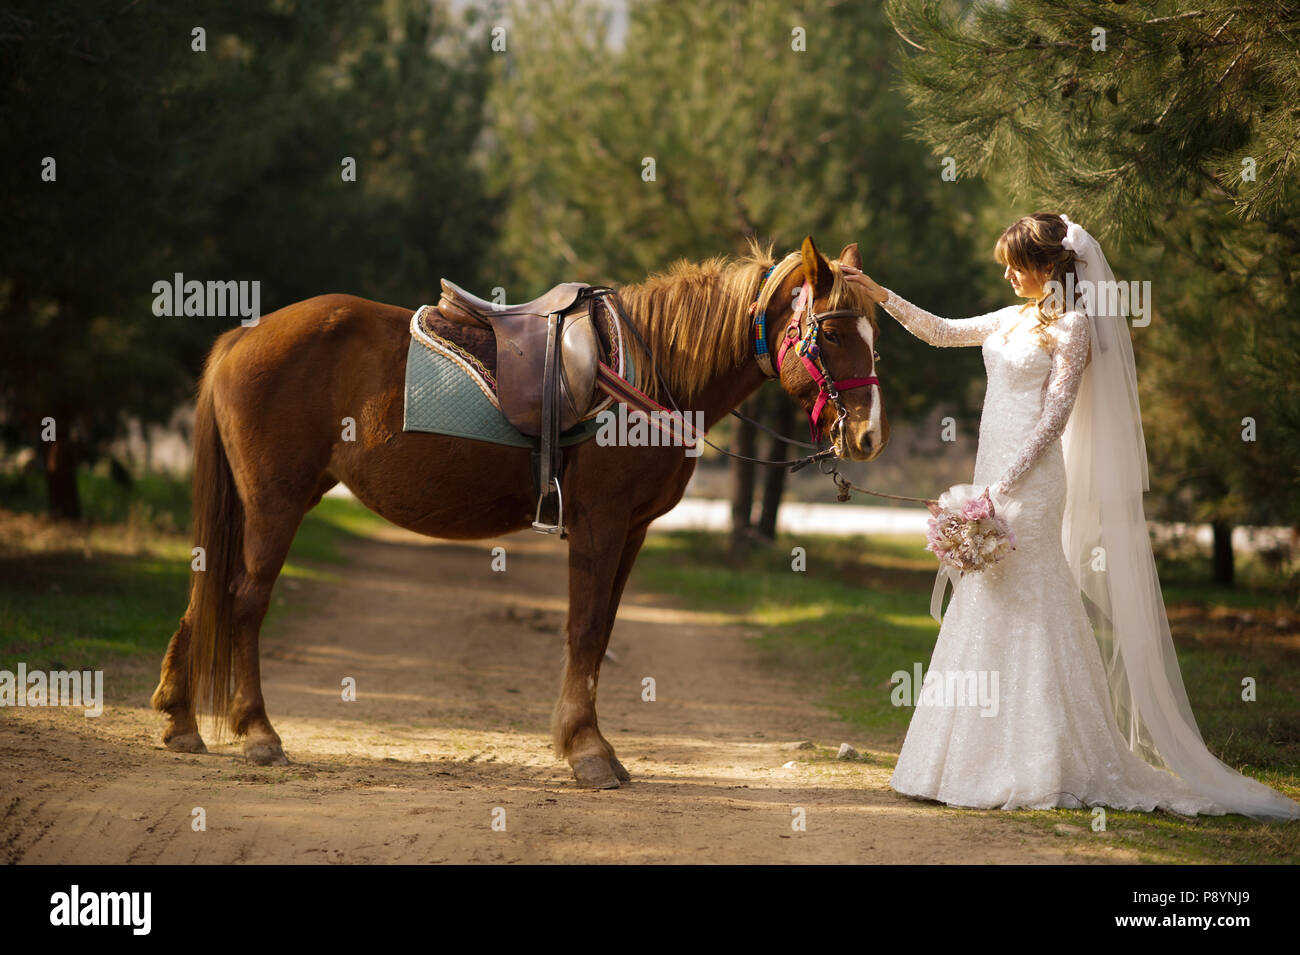 Bride And Groom Horse Traditional Wedding Ceremony Marriage Turkish Stock Photo Alamy